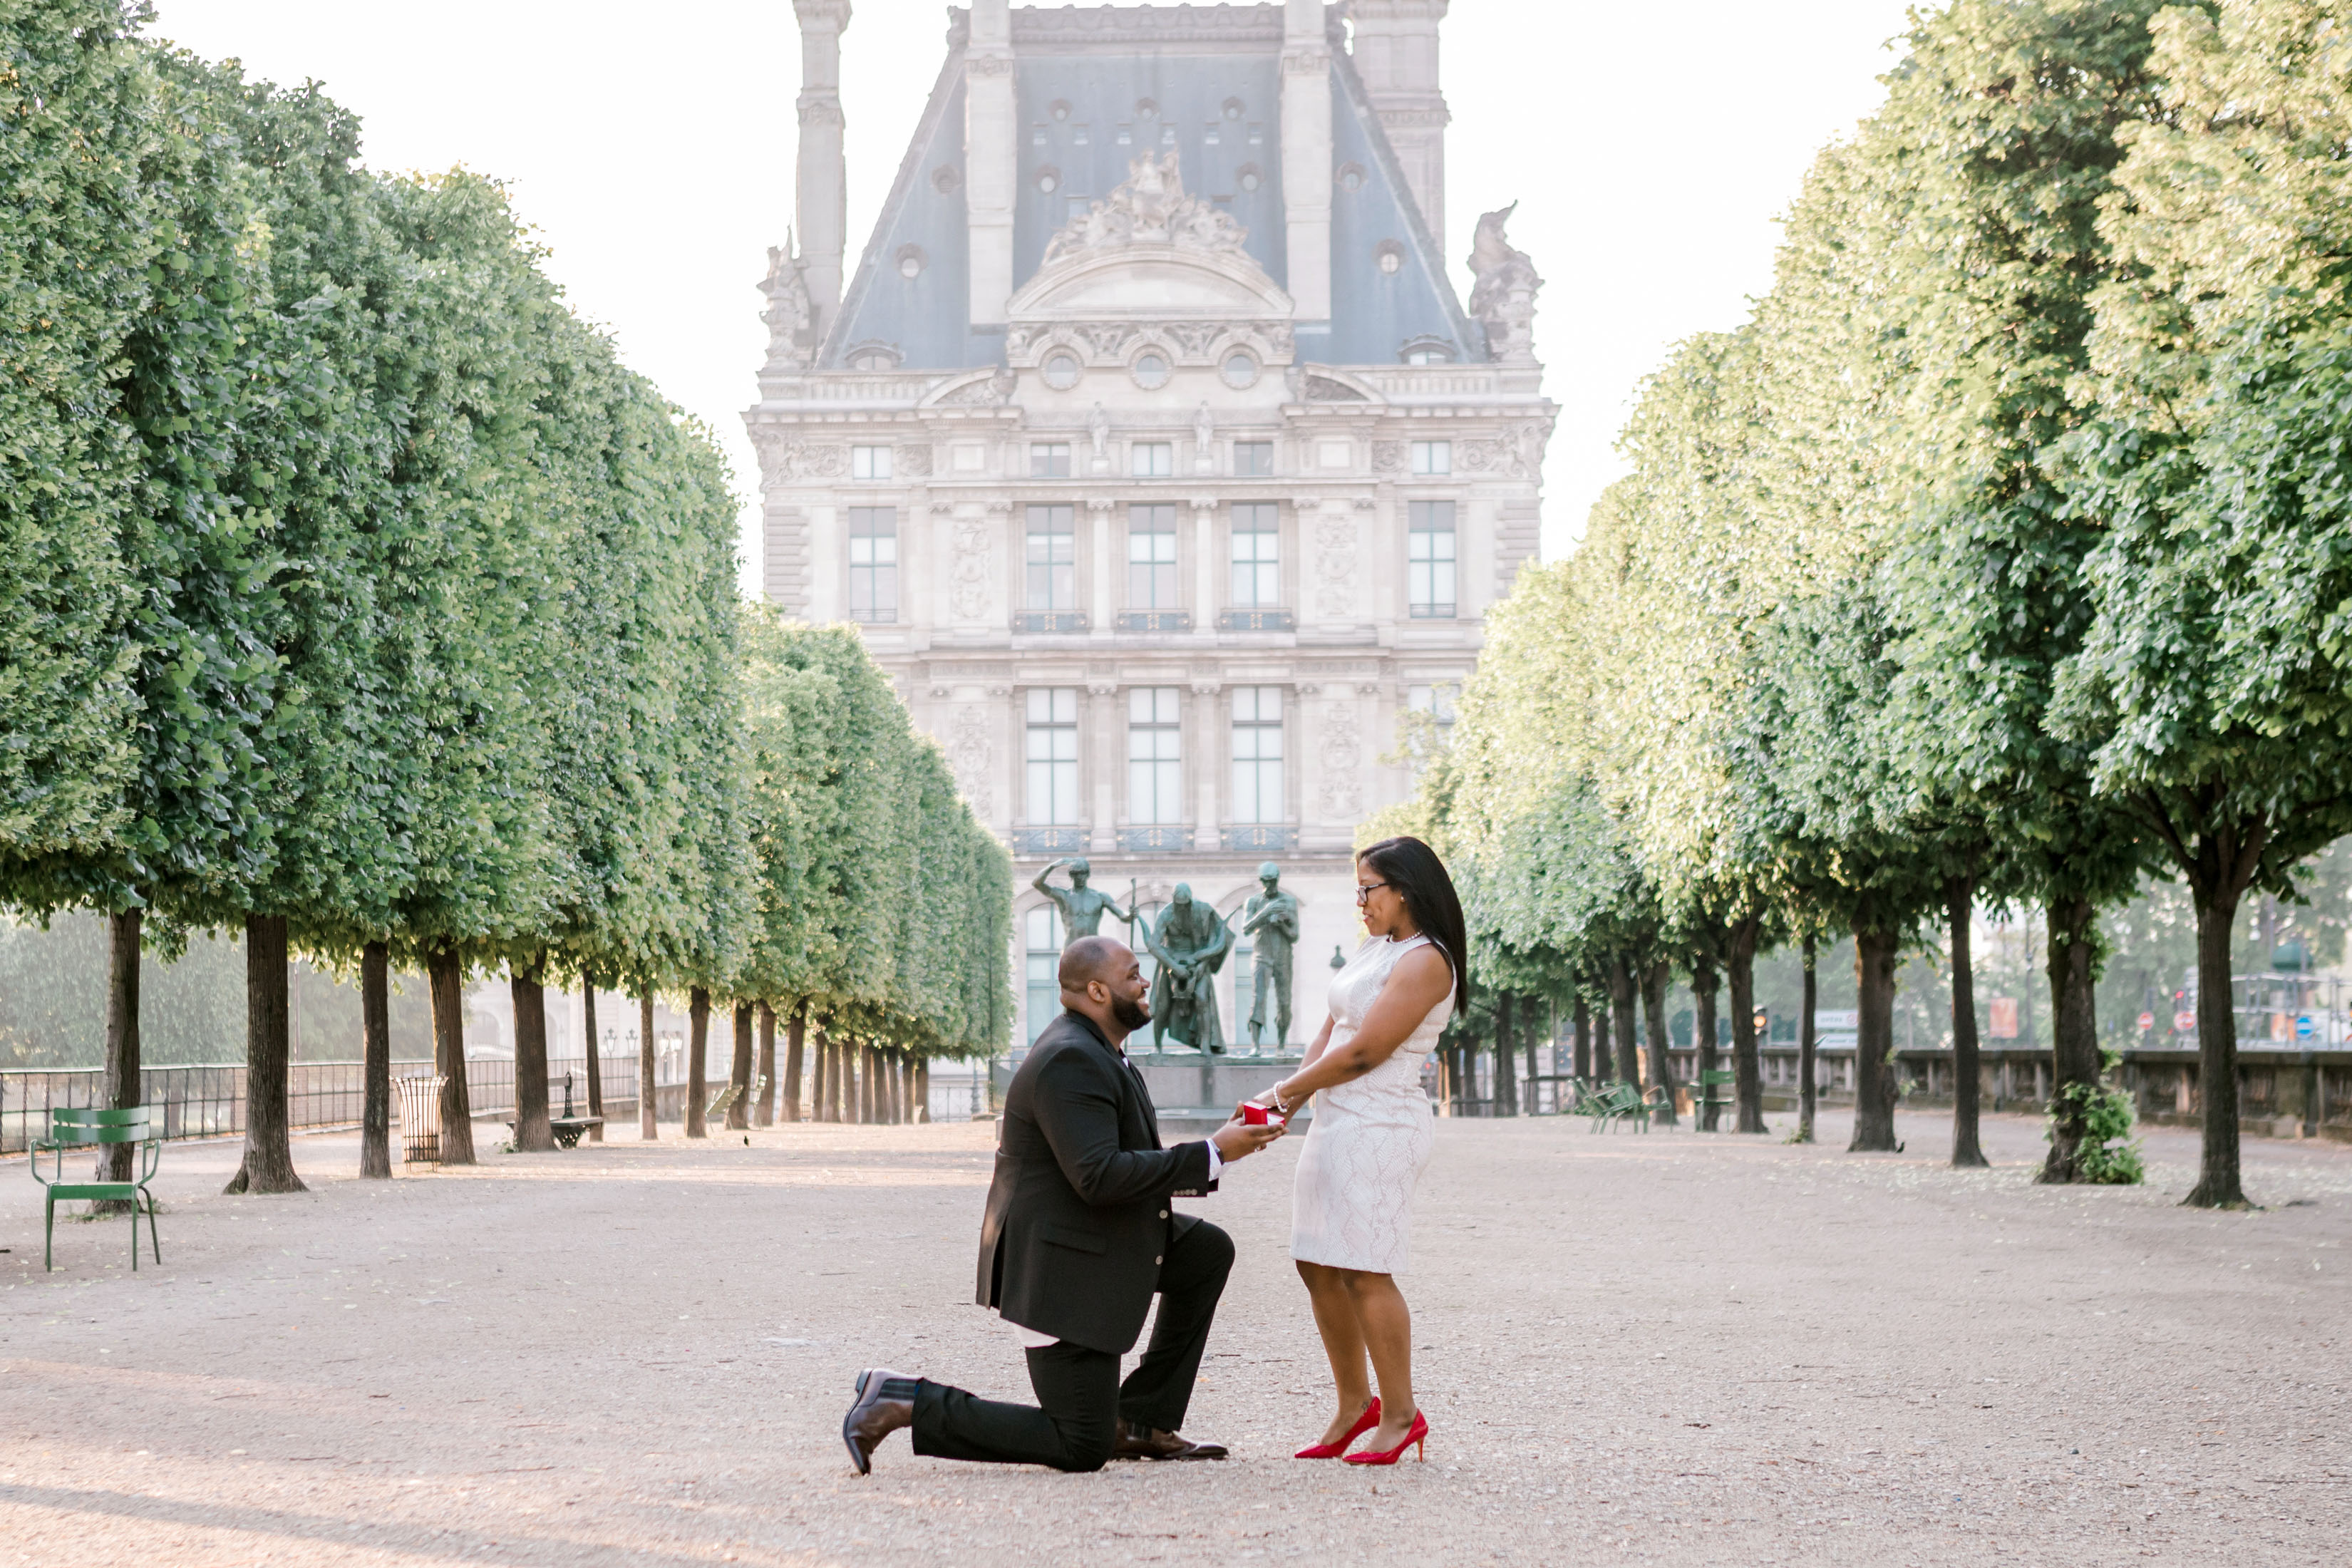 Consider These Pros and Cons Before Planning a Vacation Proposal